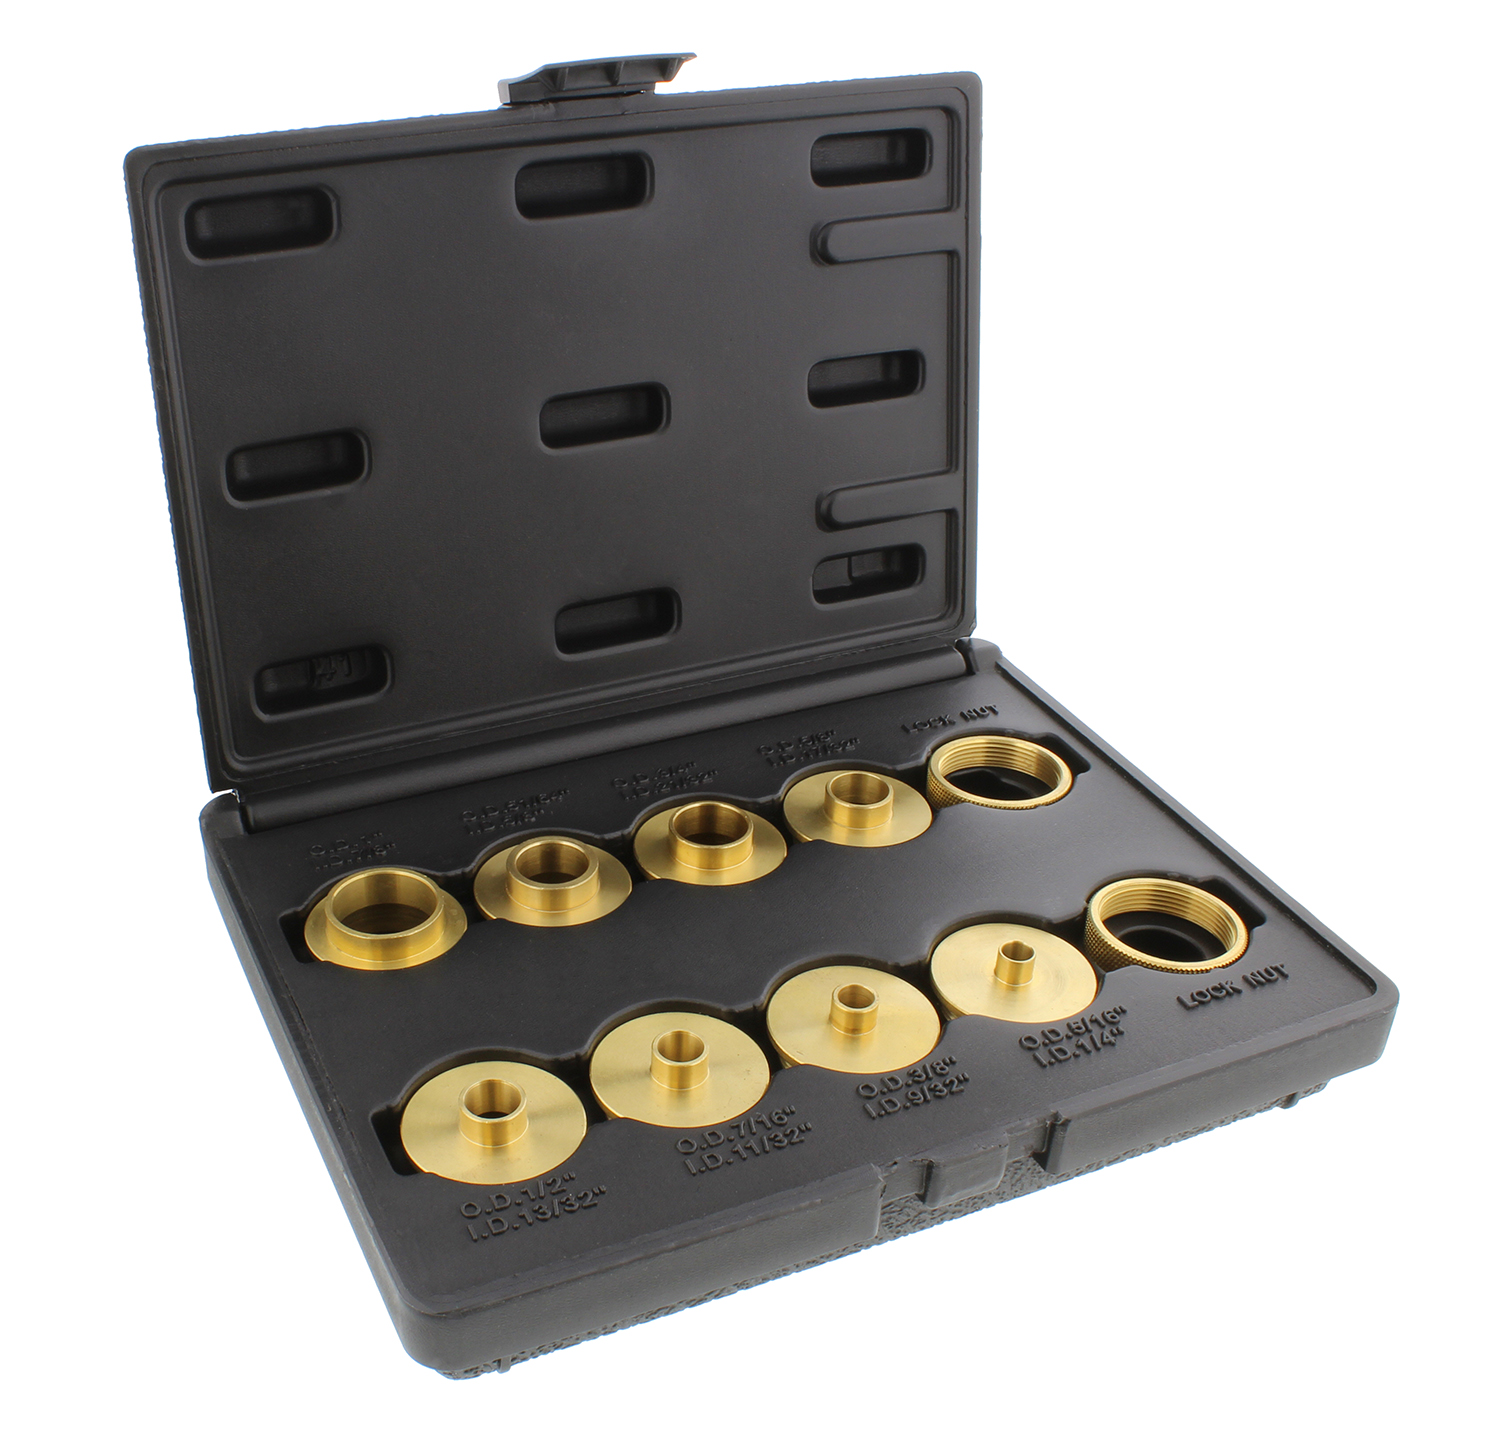 DCT Brass Router Template Guides Bushing & Lock Nuts 10-Piece Guide Bushings Set by DCT